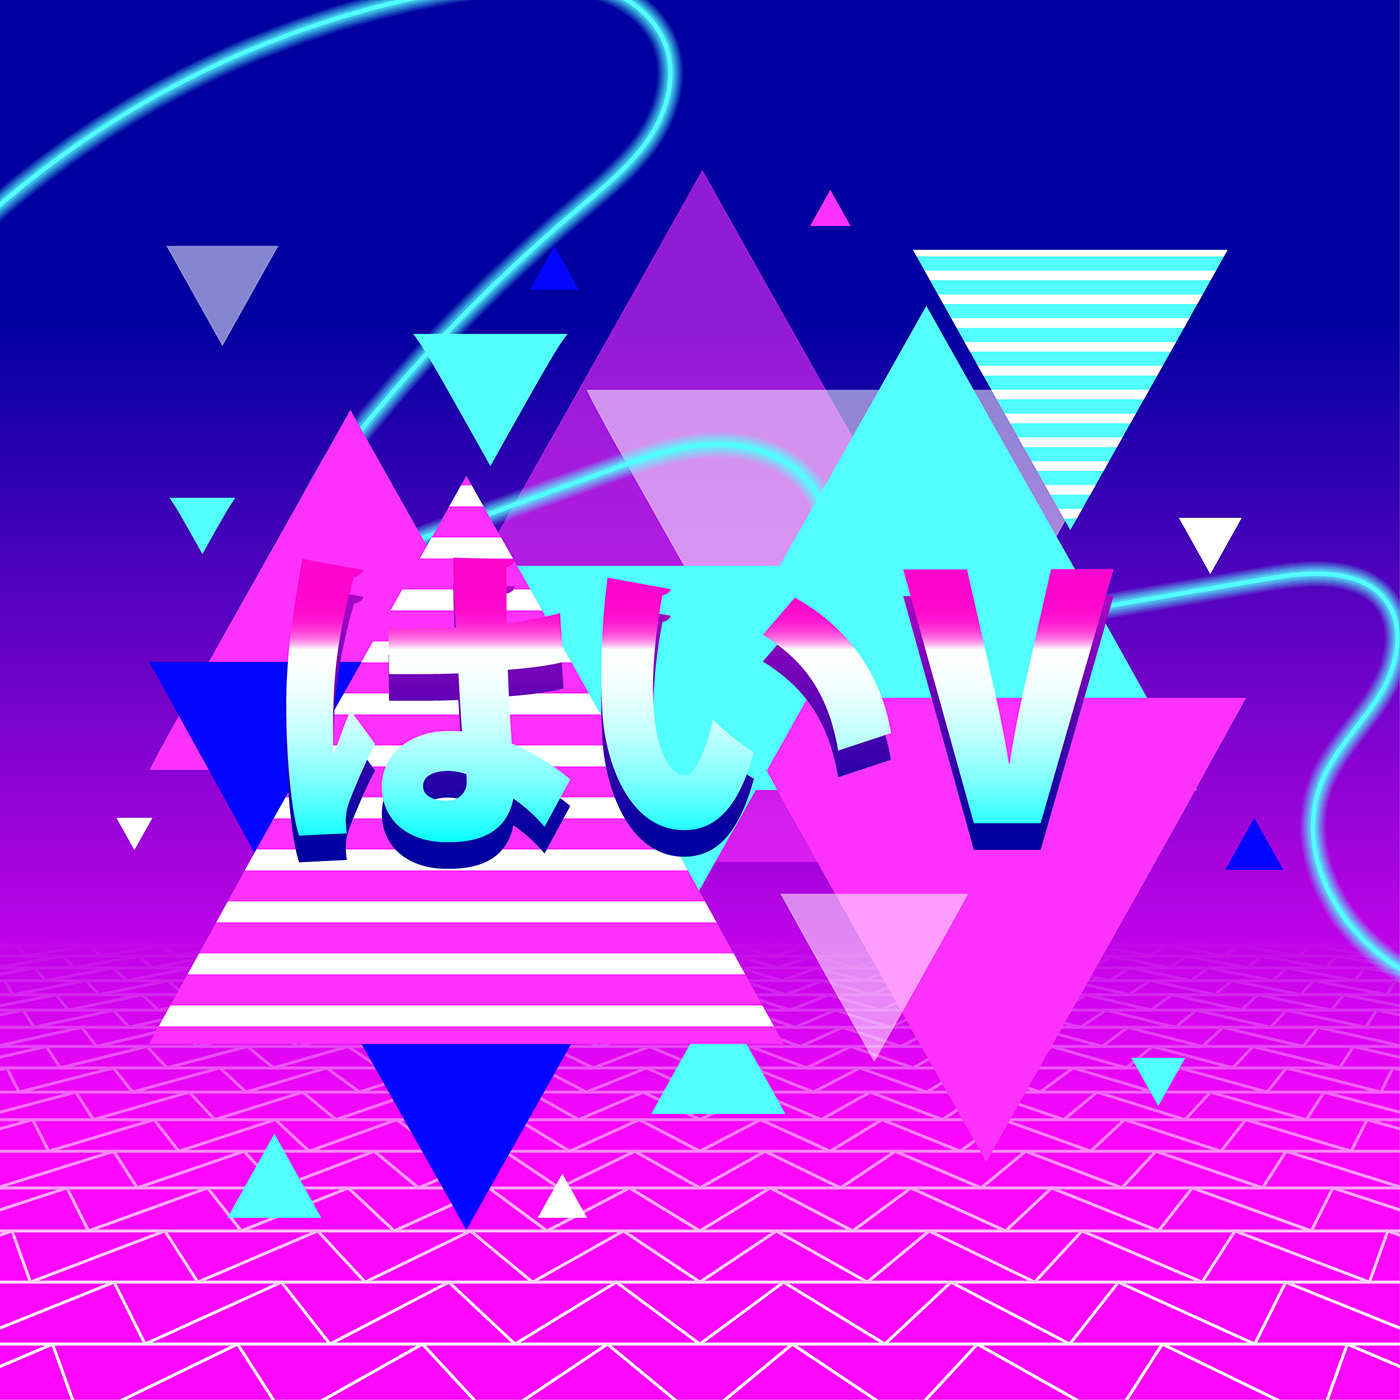 Abstract Triangle Vaporwave Vector